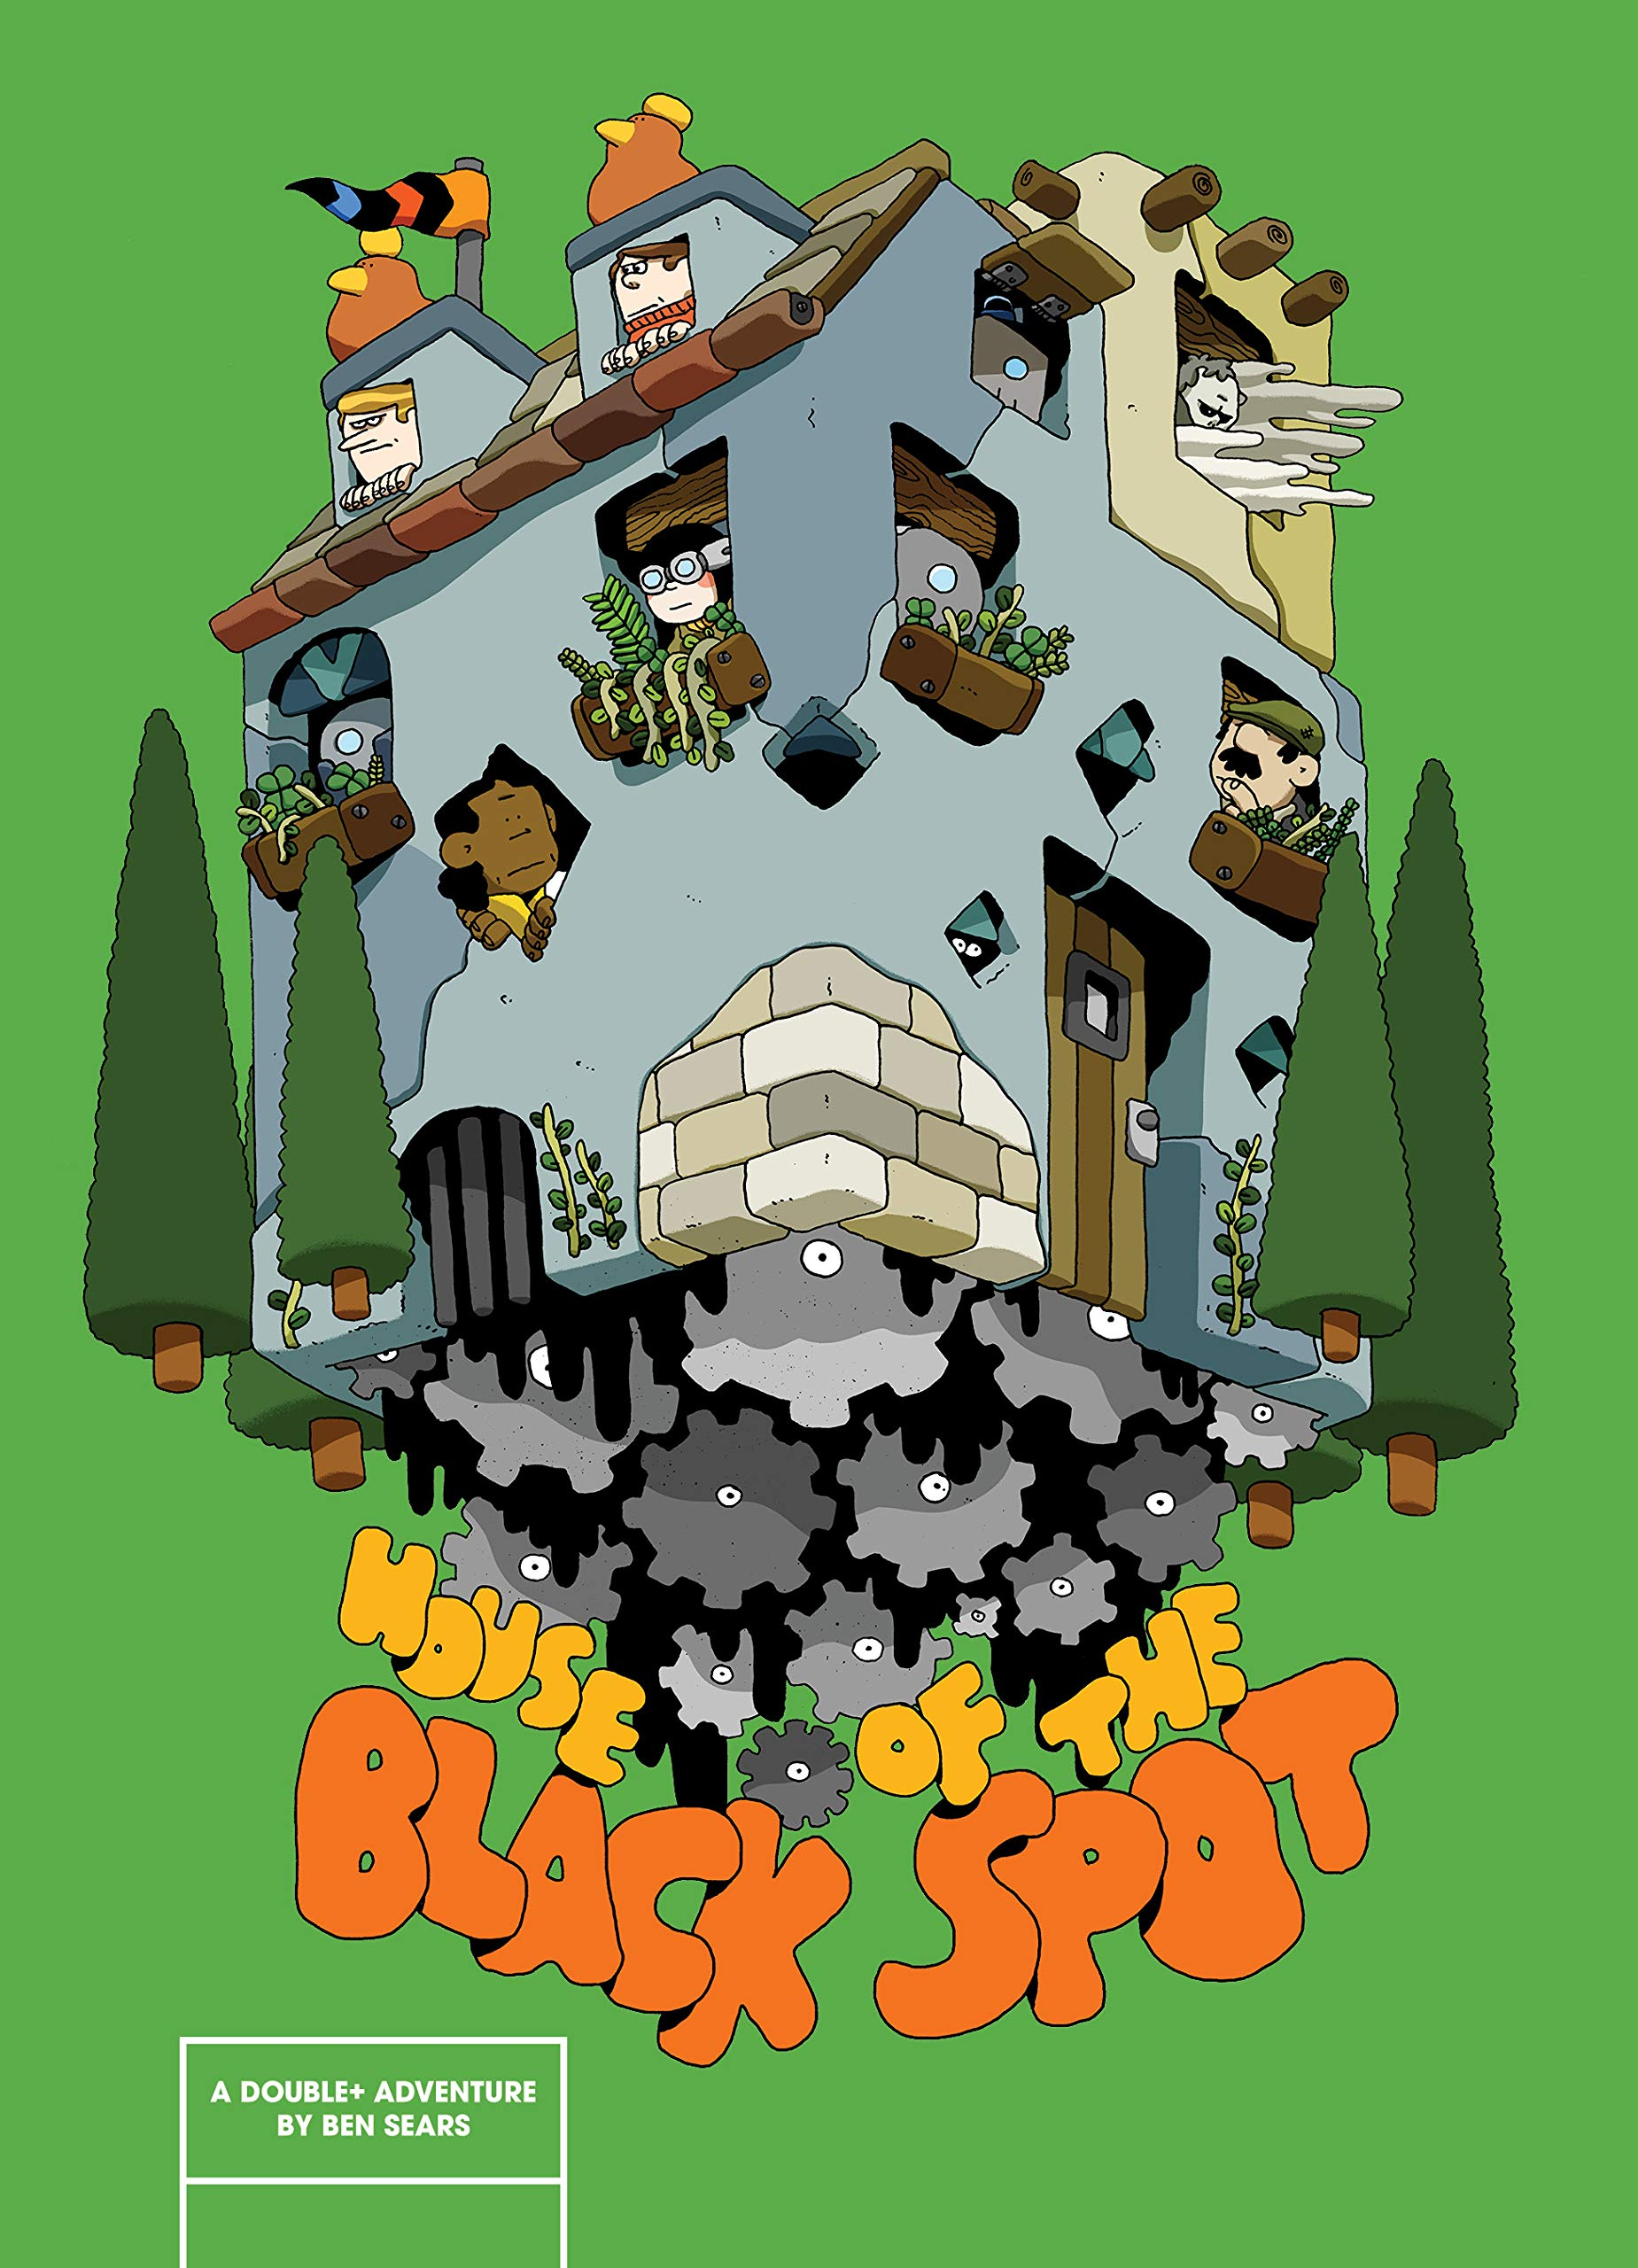 HOUSE OF THE BLACK SPOT by Ben Sears (Koyama Press, May 2019)